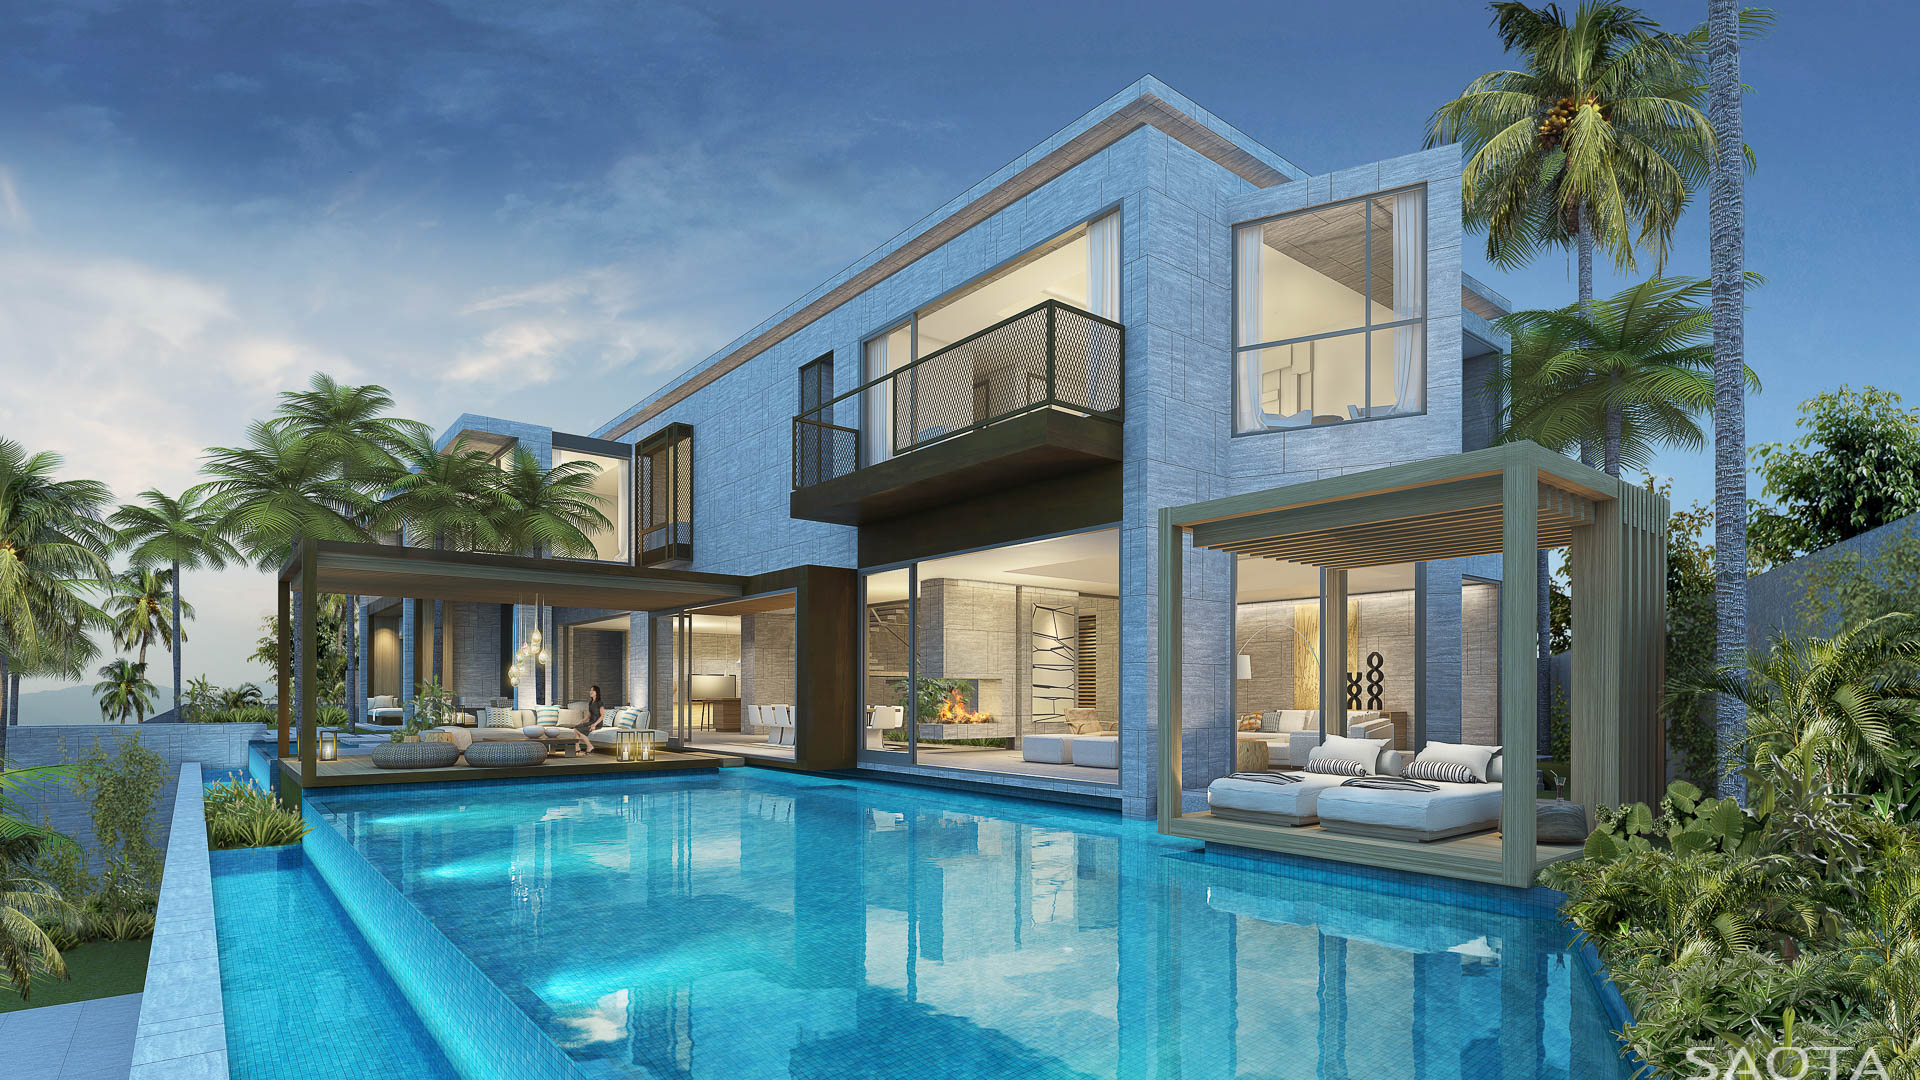 30 yet to be built modern dream homes by saota part 1 Create dream home